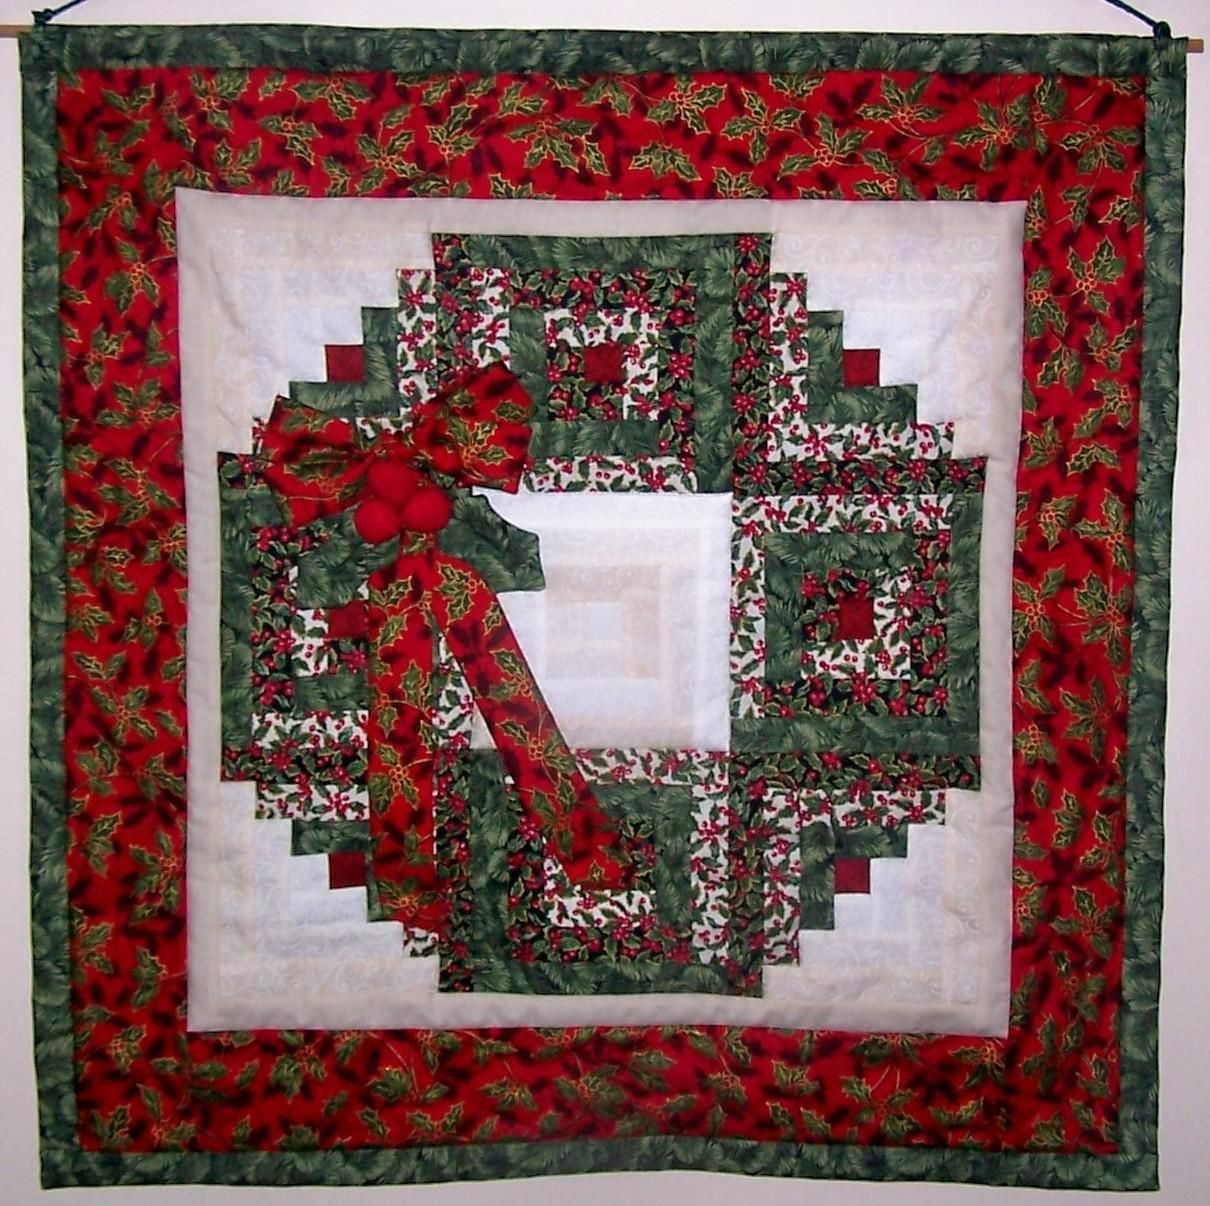 Quilt Pattern For Christmas Wreath : Christmas Log Cabin Wreath Meeting Log cabins, Wreaths and Christmas quilting